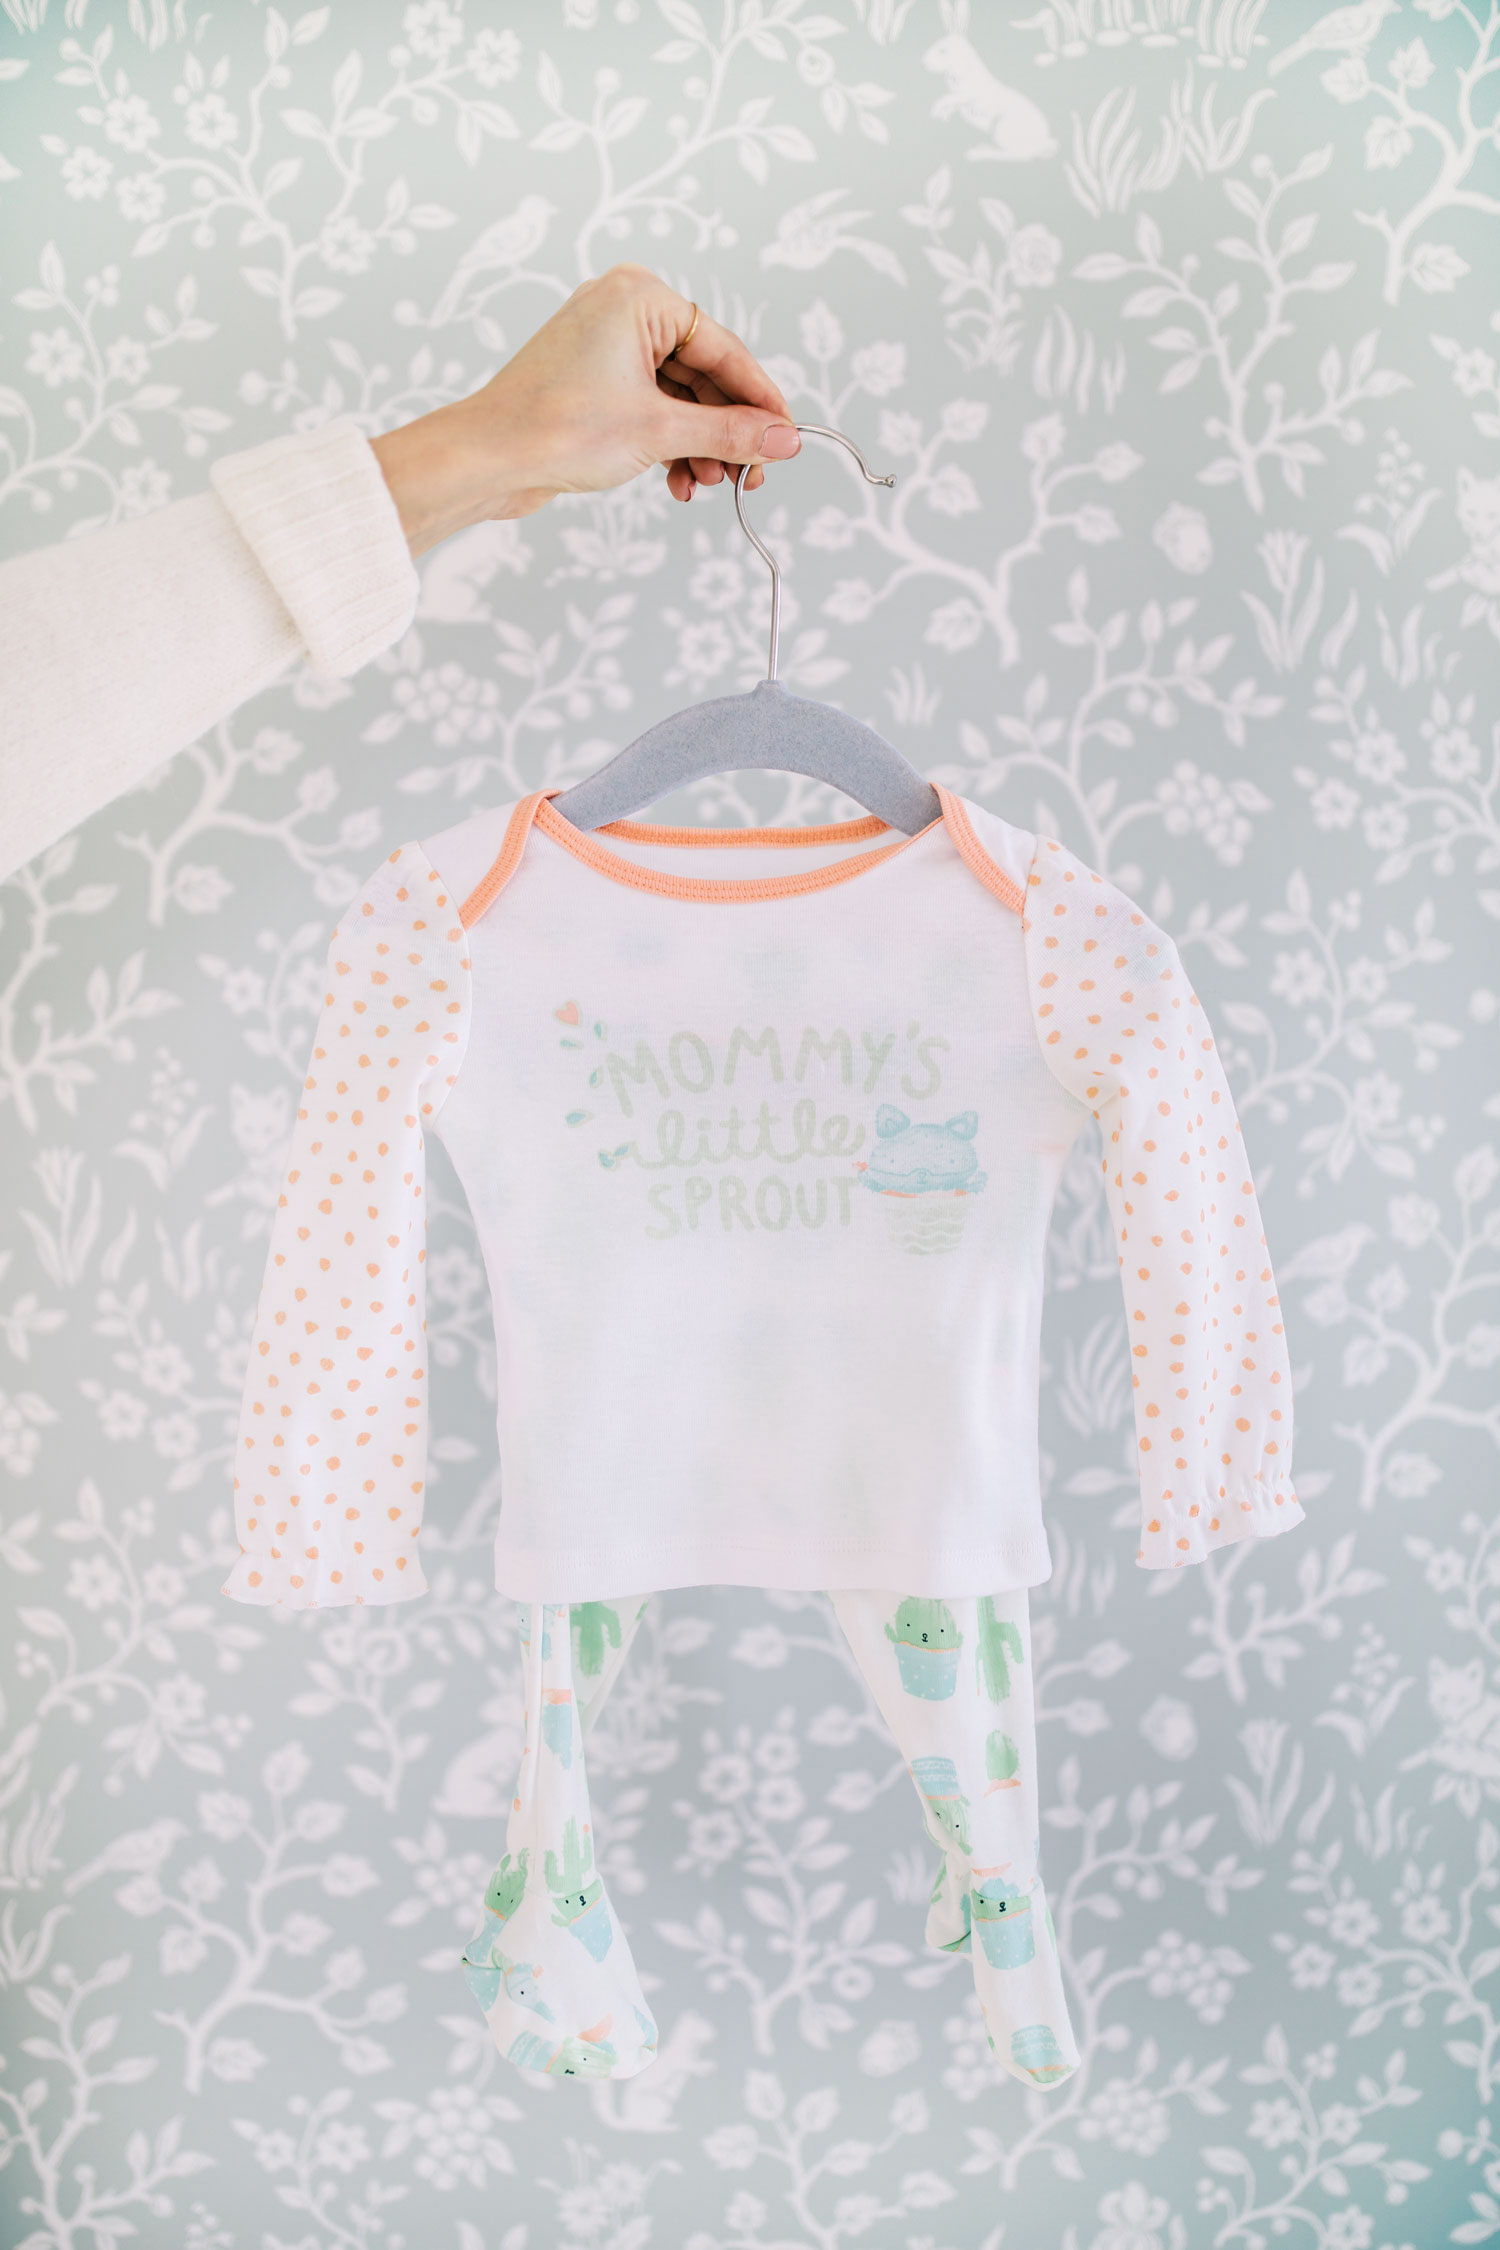 feb0b1fbb8 I love that they can be worn alone or layered under pants and sweaters.  These particular bodysuits come in a set of 4 for just  16! Many of the Joe  Fresh ...